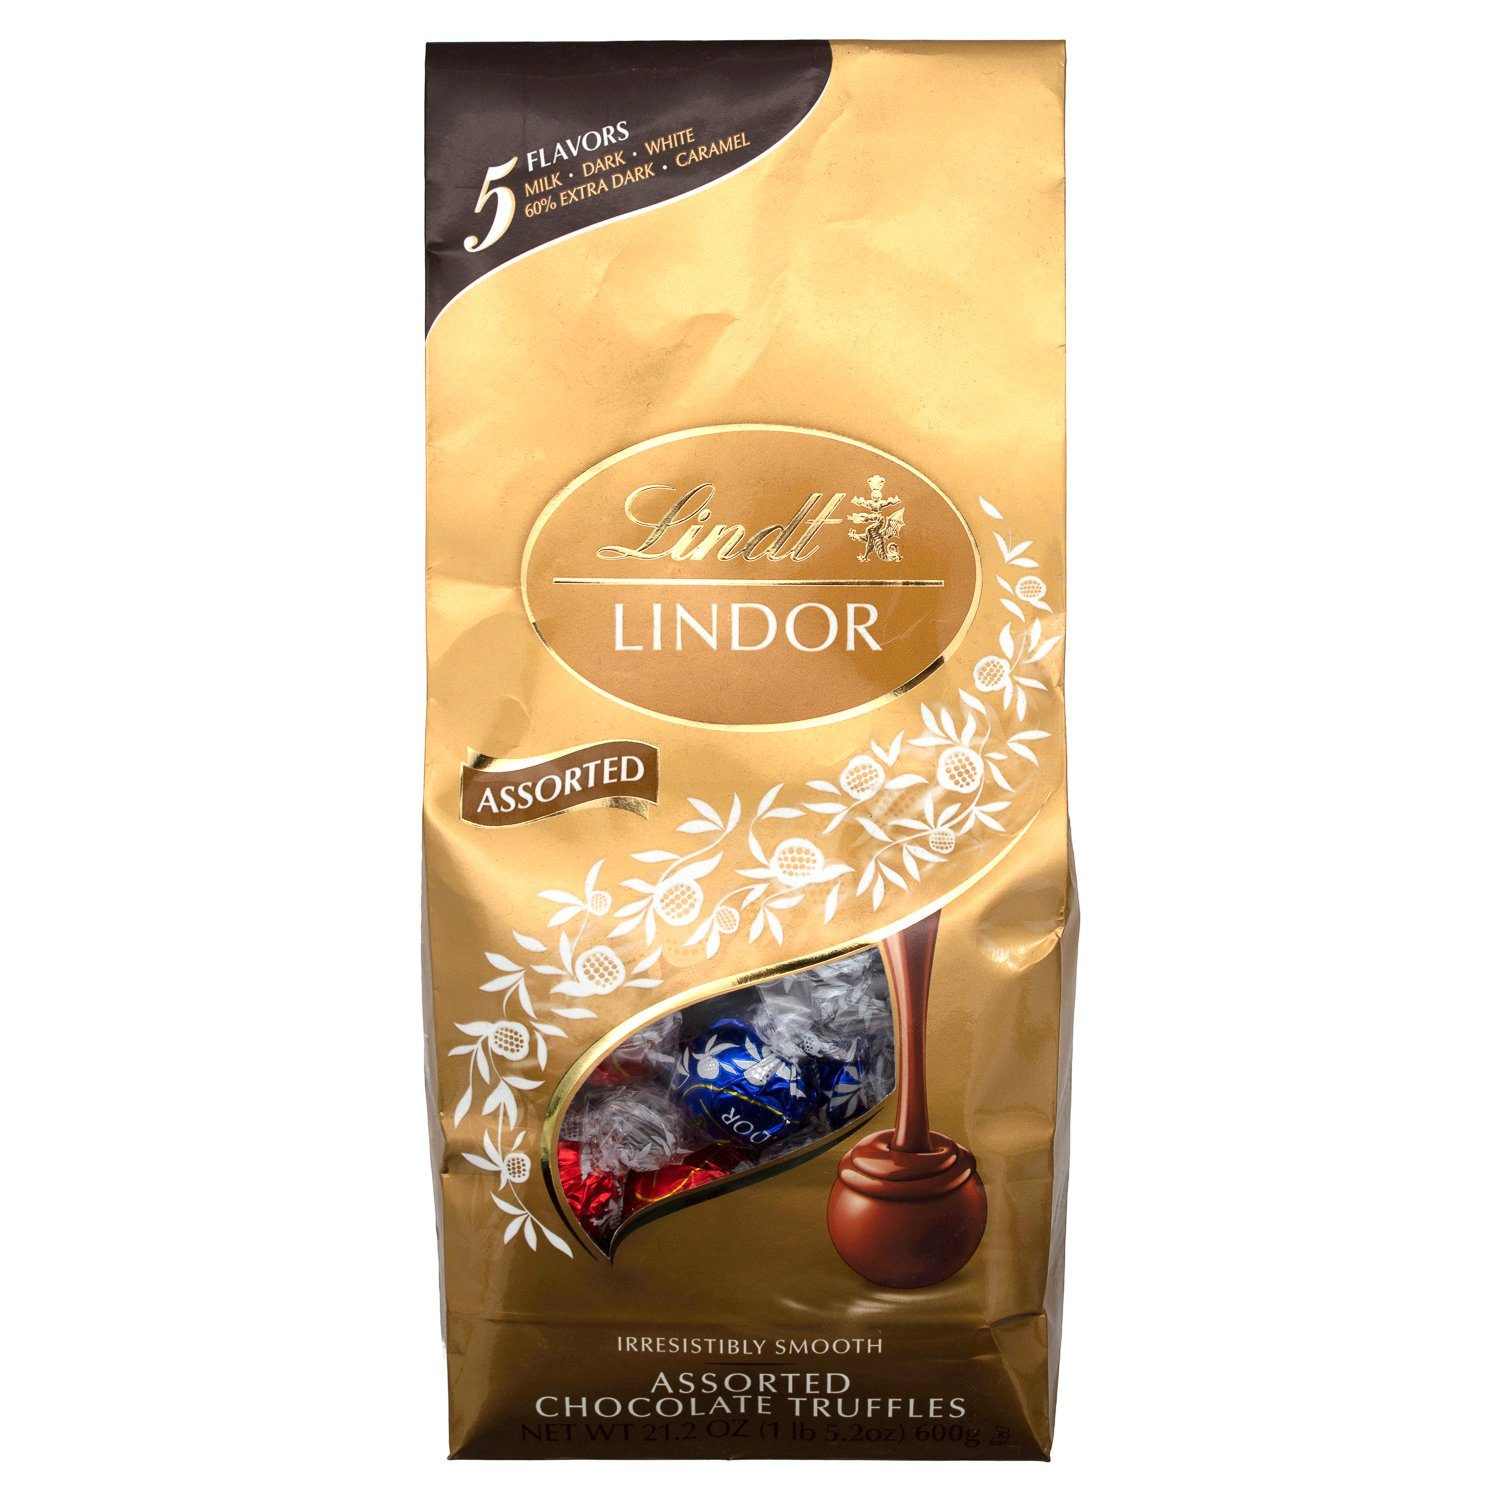 Lindt LINDOR Truffles Meltable Lindt Assorted 21.2 Ounce